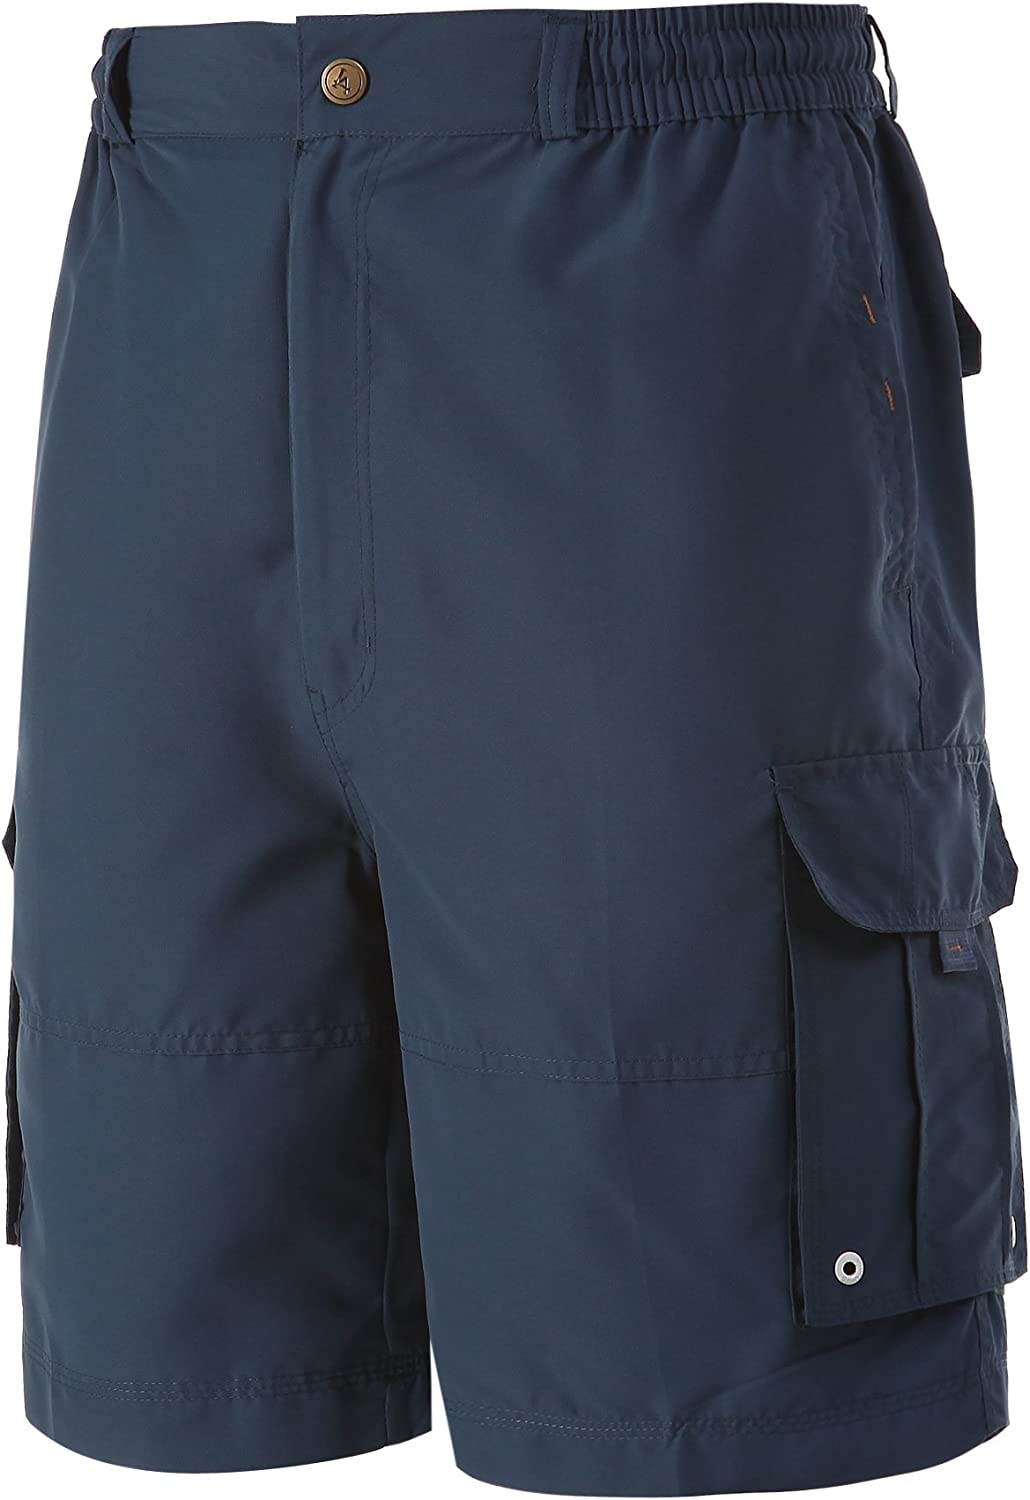 A.WAVE Outdoor Sports Cargo Short Elastic Waist Flat Front Quick Dry/Big & Tall Swimming, Hiking, High-Performance